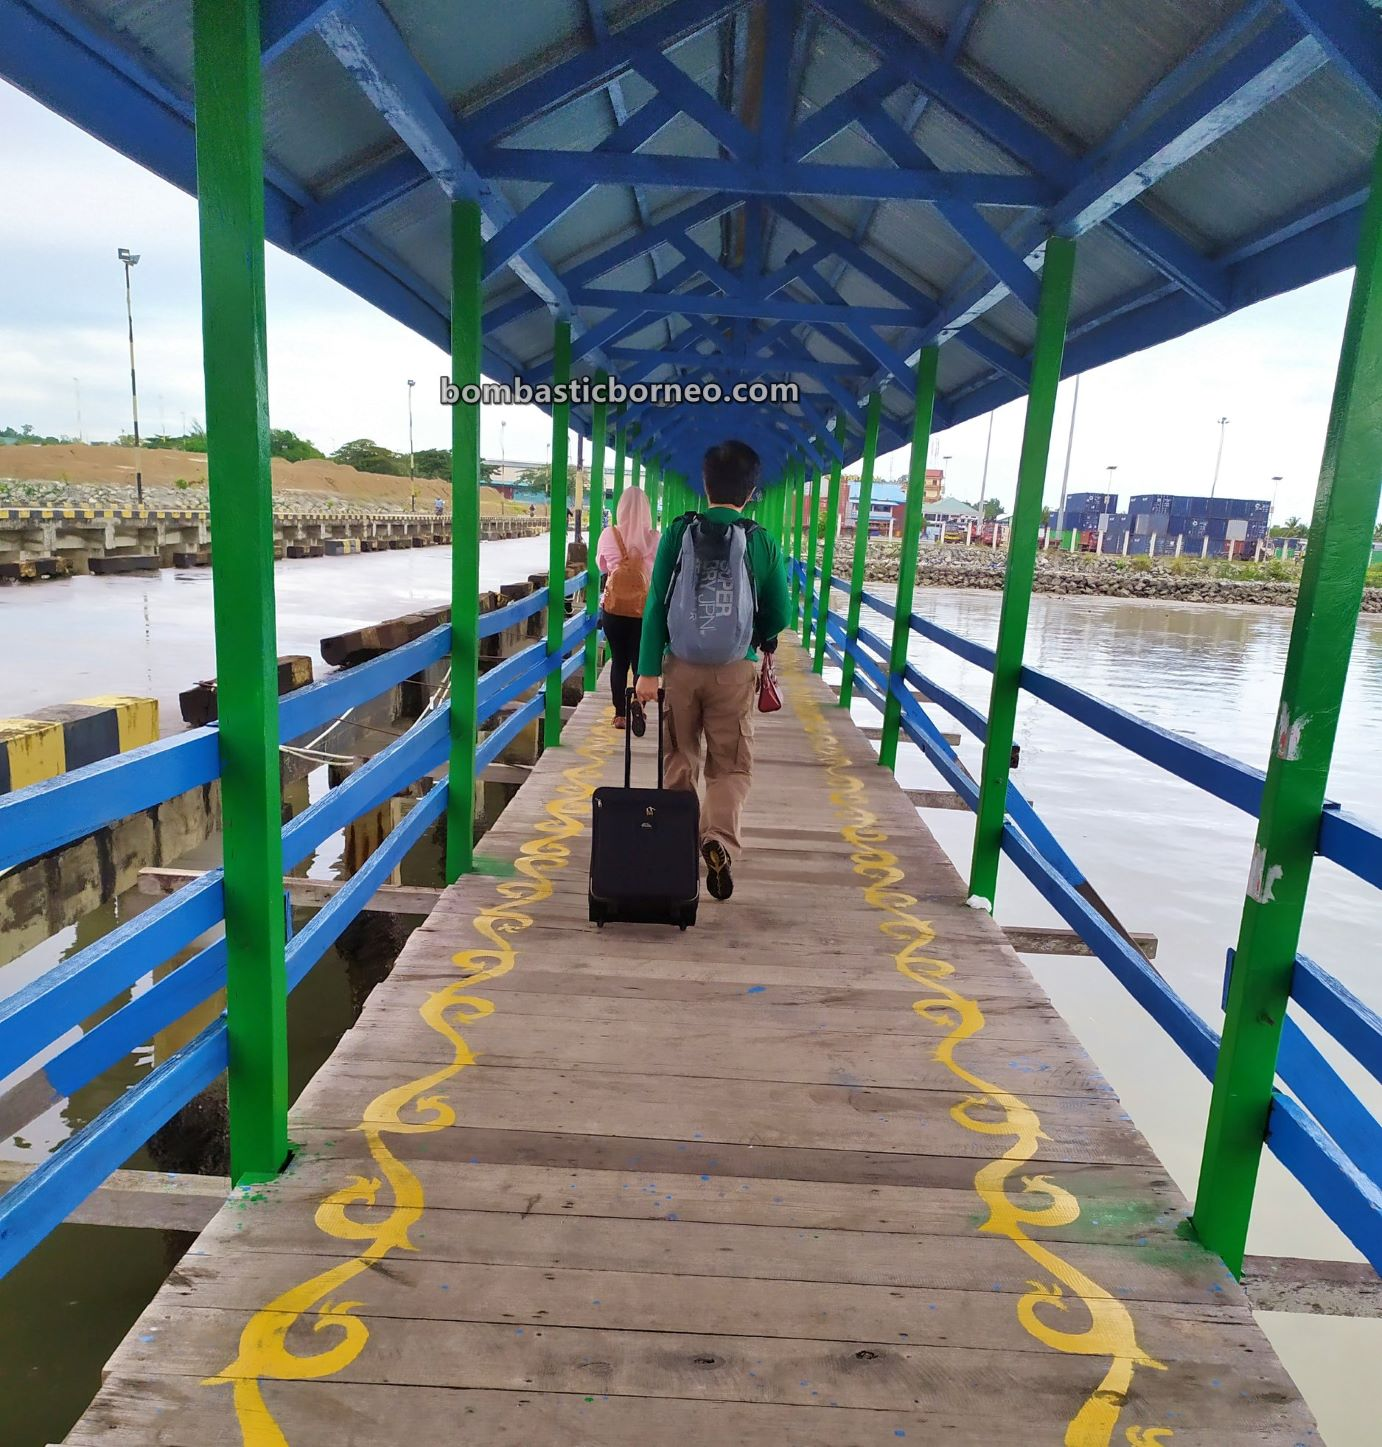 Ferry terminal, Express Boat Ride, backpackers, destination, exploration, Kaltara, Kapal Besar, port, wharf, travel guide, Cross Border, Borneo, 探索婆罗洲游踪, 印尼北加里曼丹, 打拉根轮渡码头